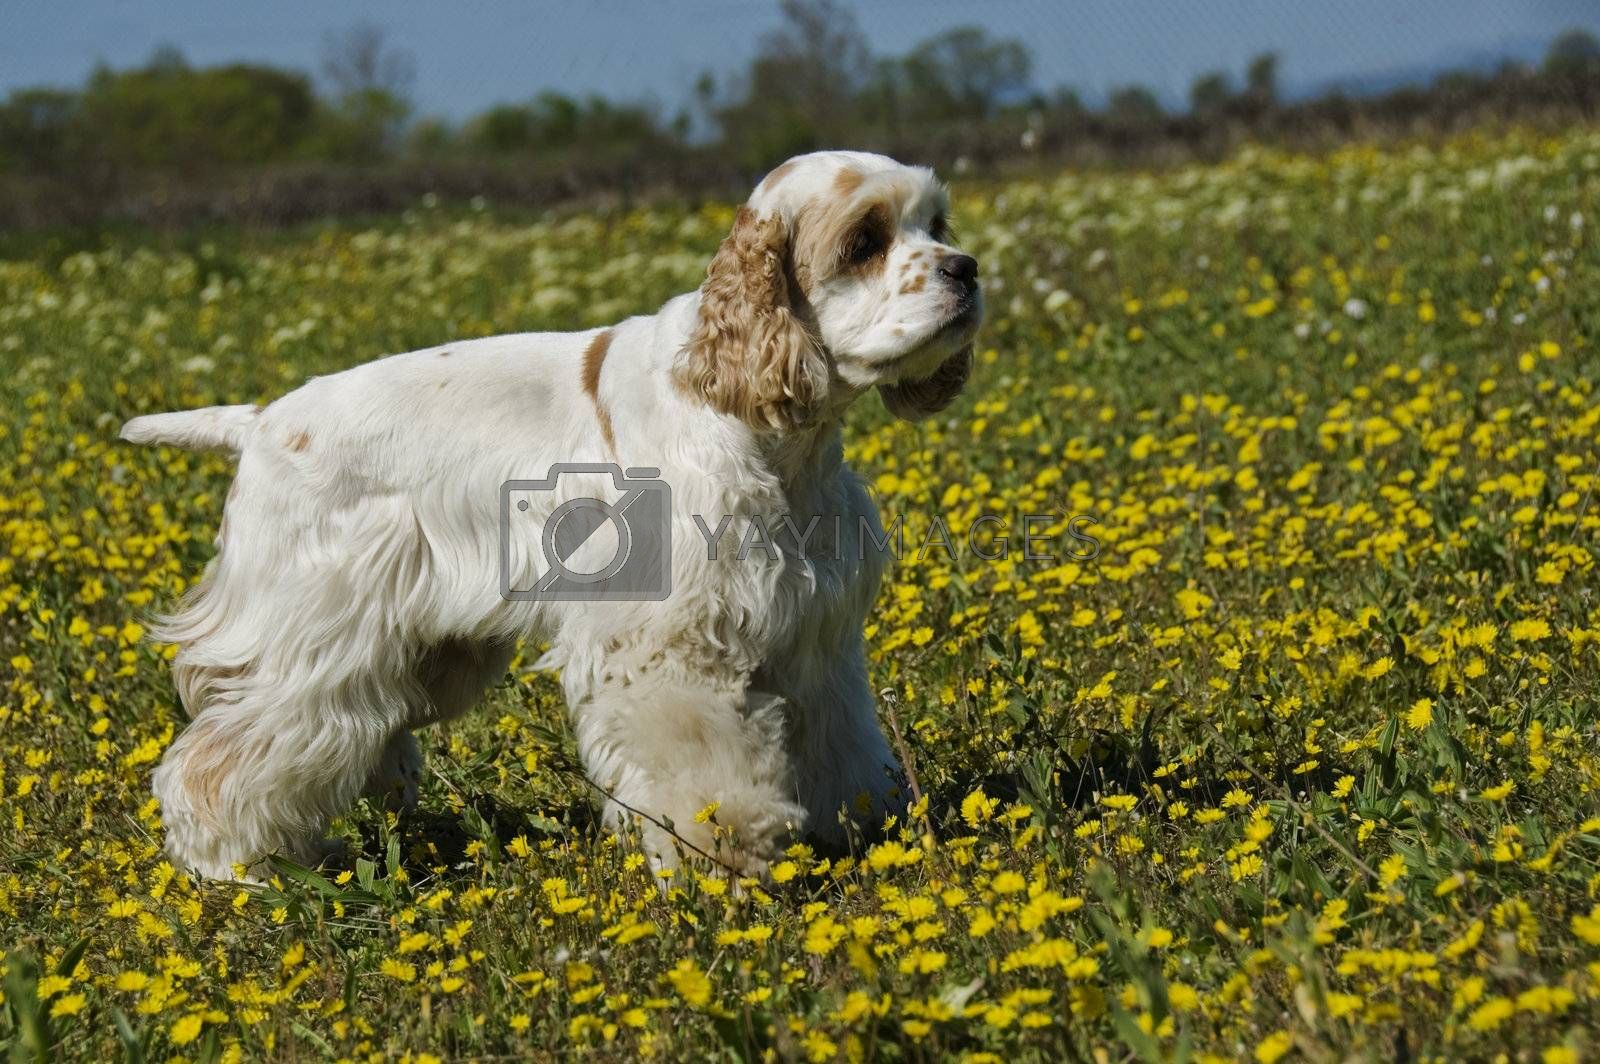 purebred american cocker upright in a field with yellow flowers